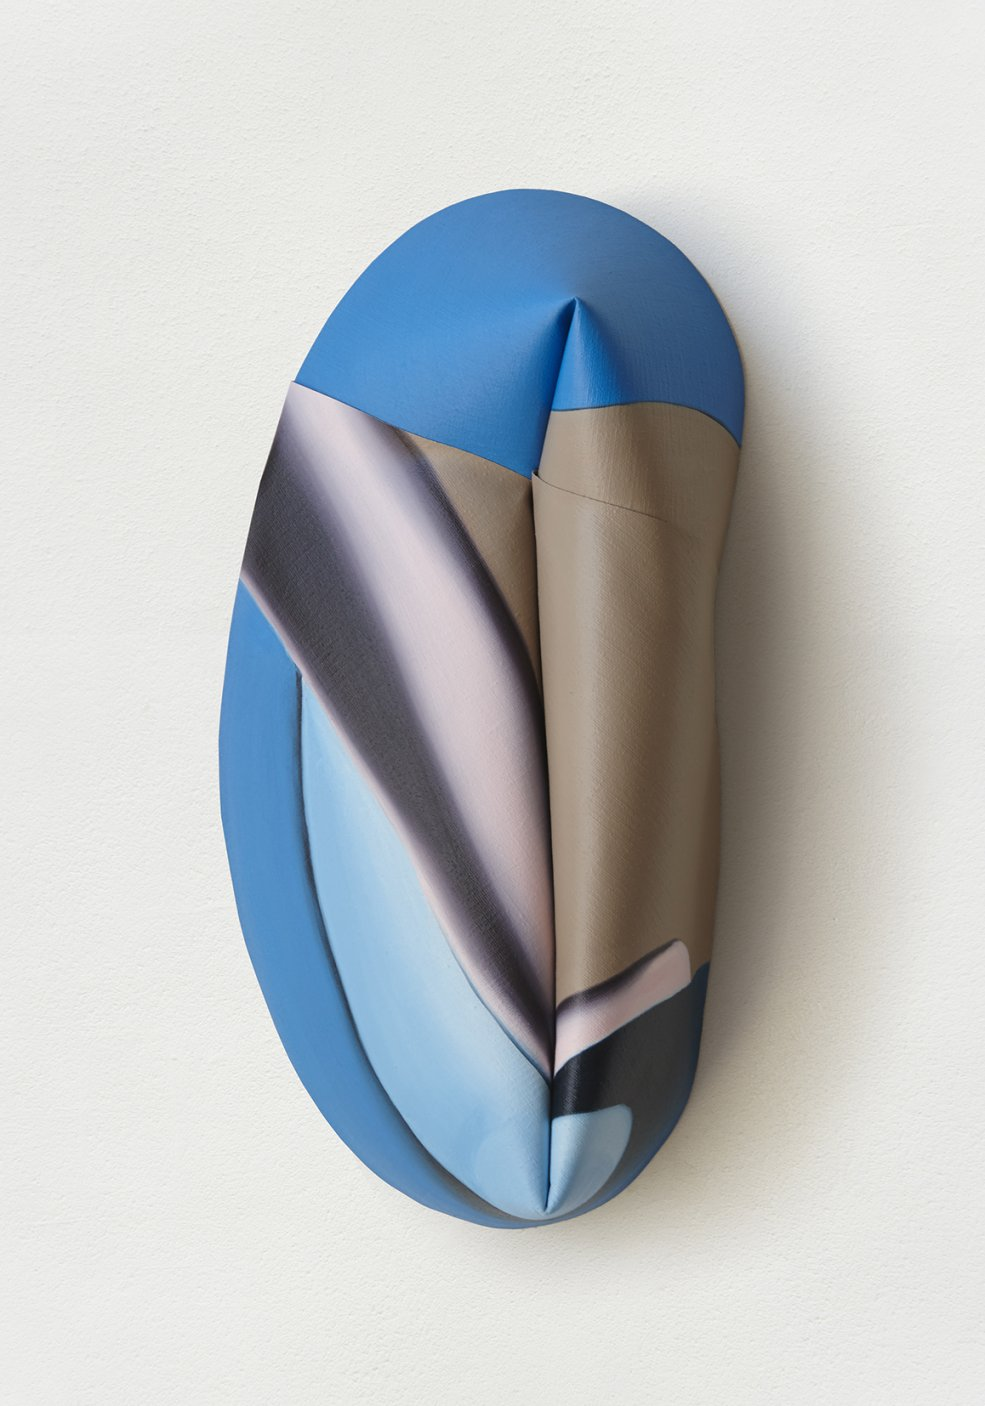 Proper Part of the Whole, Dividing 6 (Seeing Blue) (2016) - Allison Malinsky